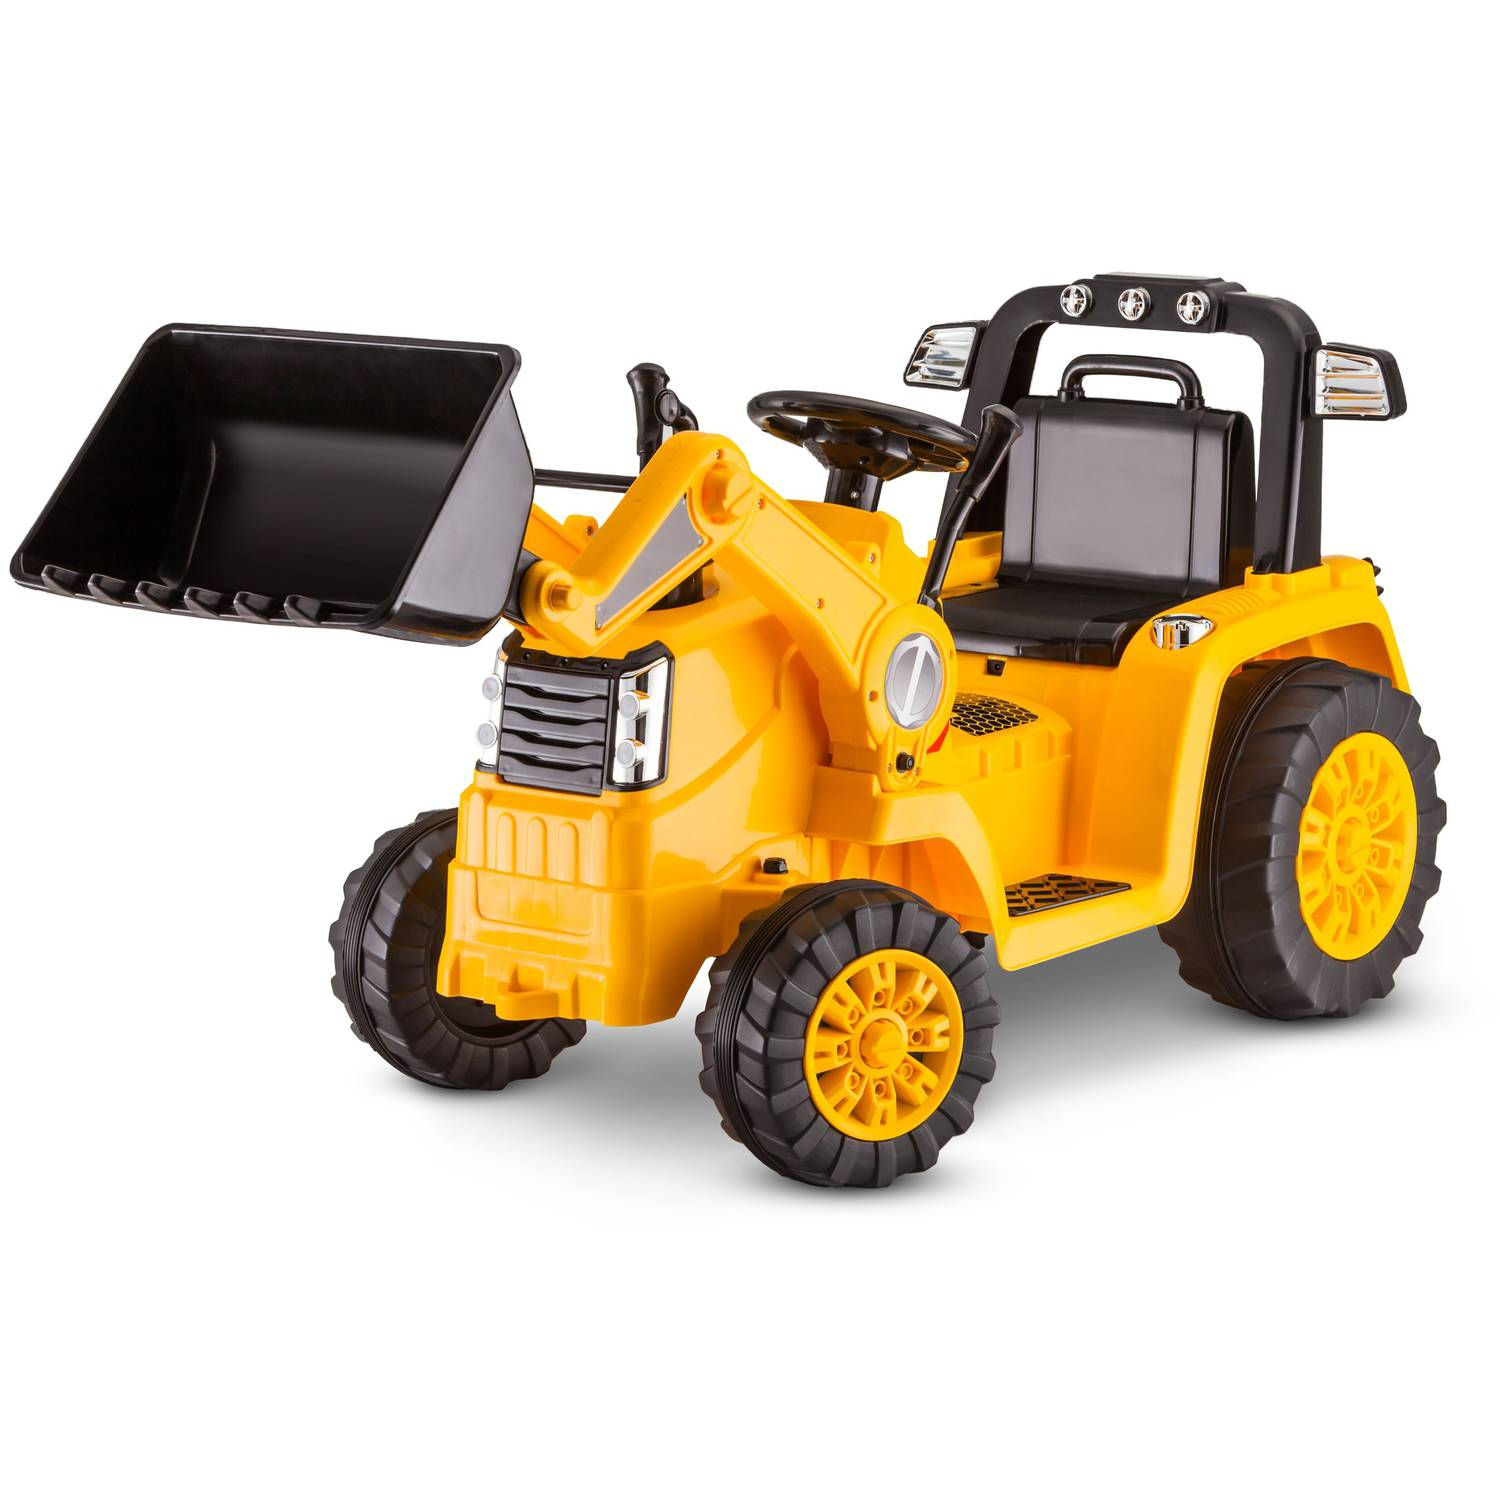 kid trax bulldozer wiring diagram private sharing about wiring rh caraccessoriesandsoftware co uk